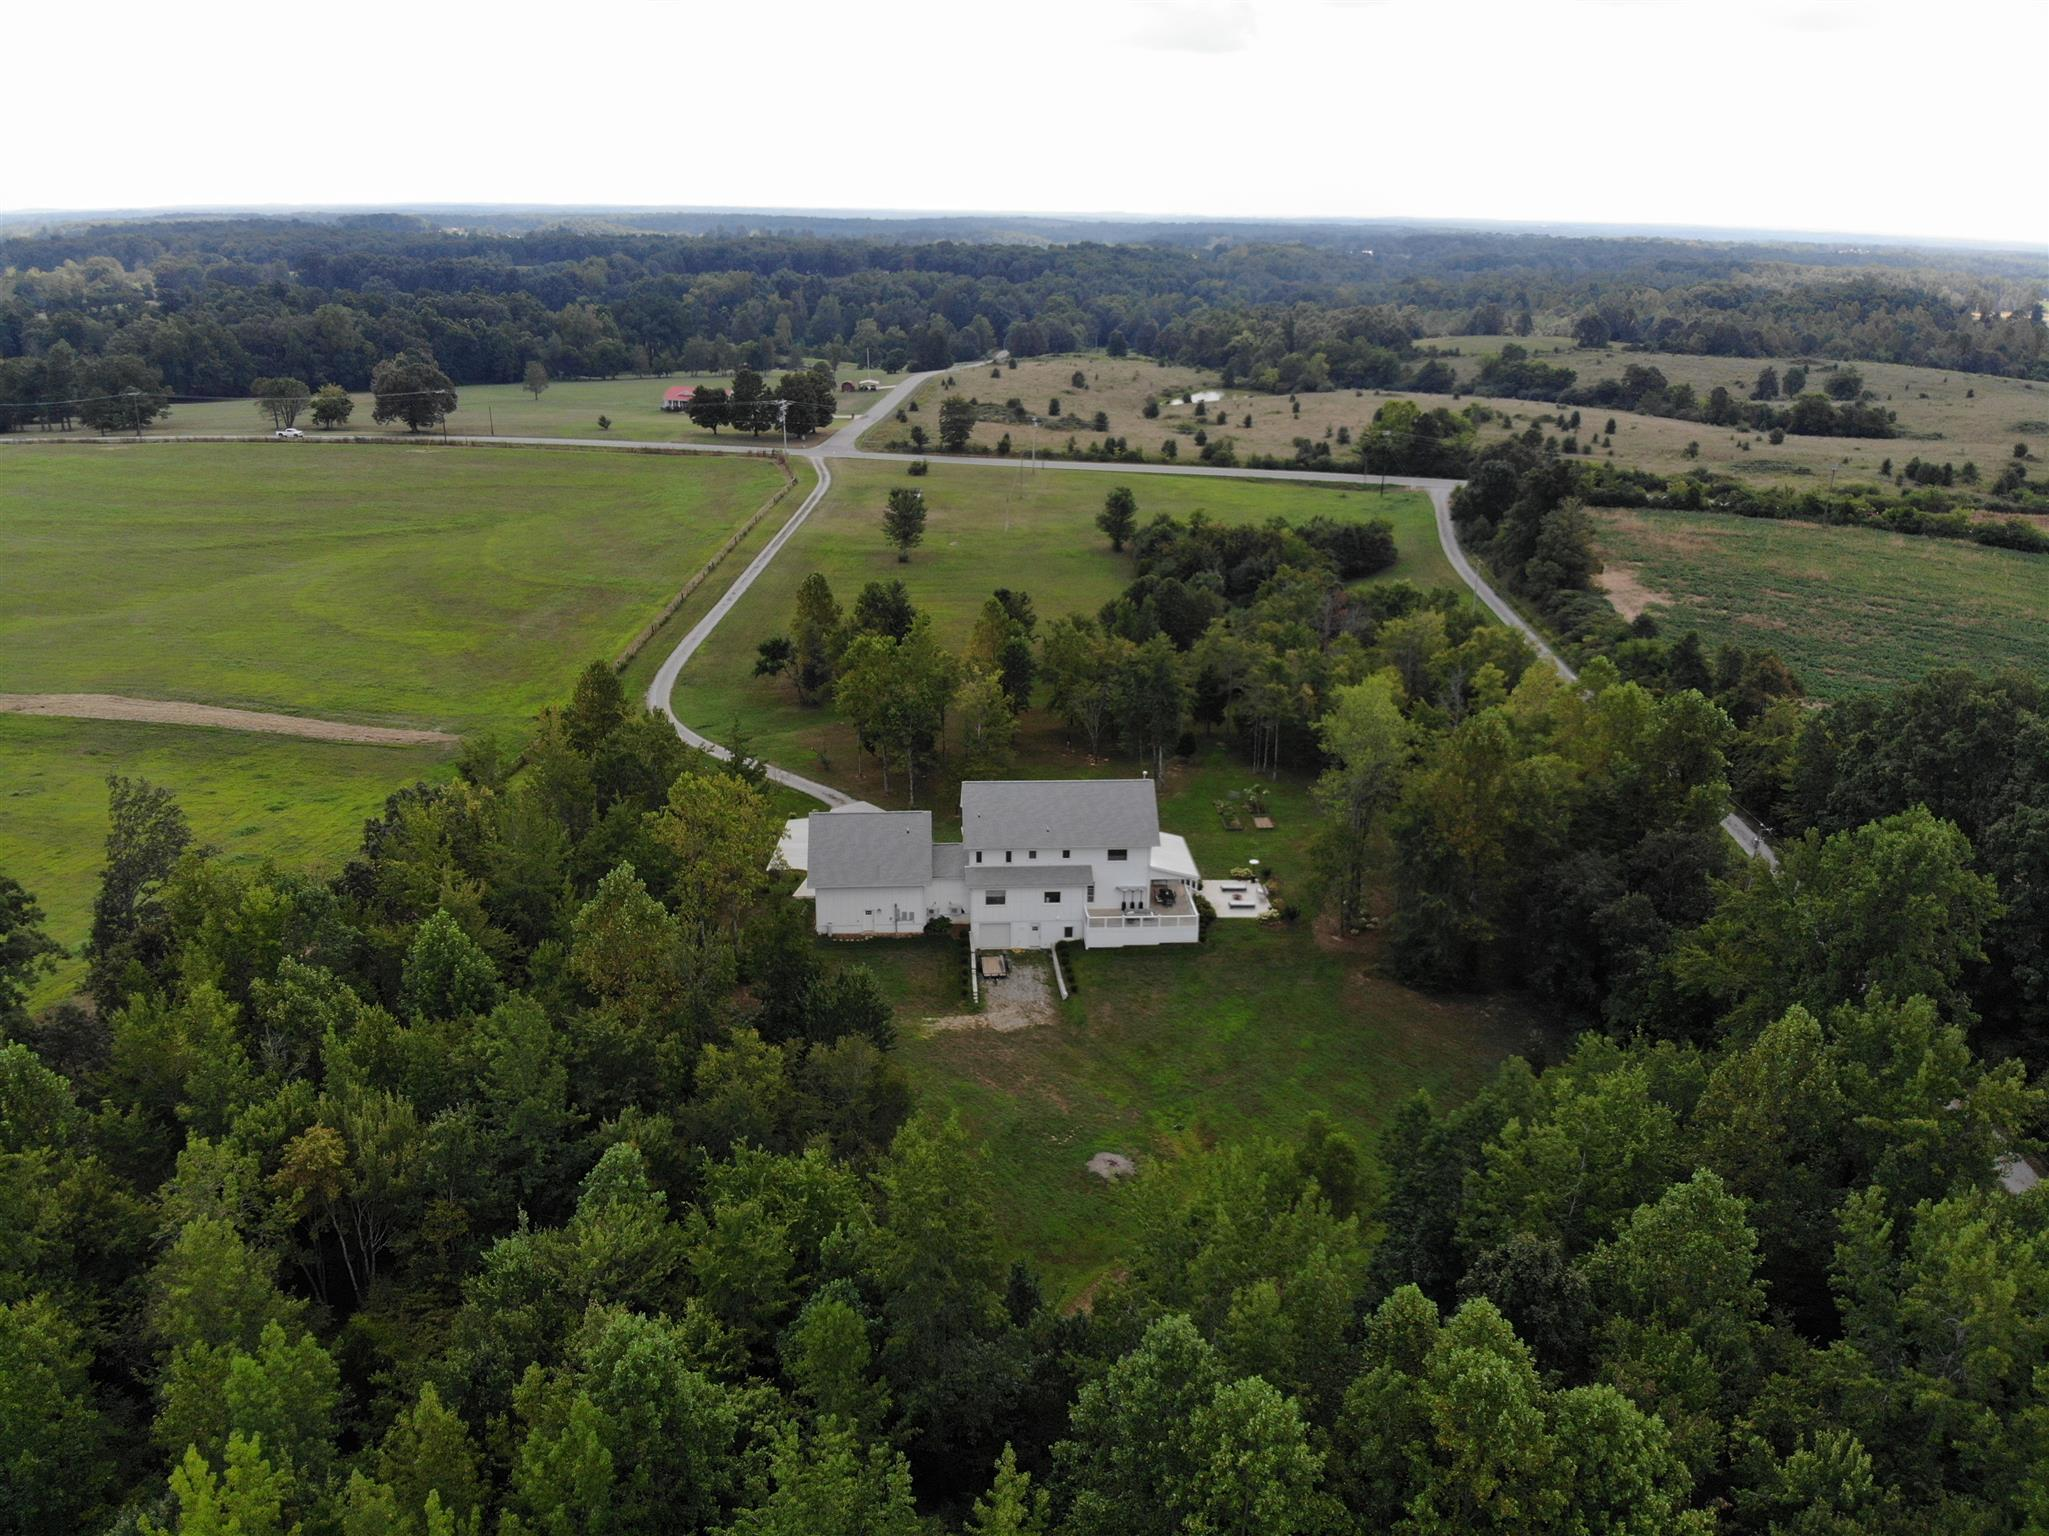 7530 Pinewood Rd, Primm Springs, TN 38476 - Primm Springs, TN real estate listing